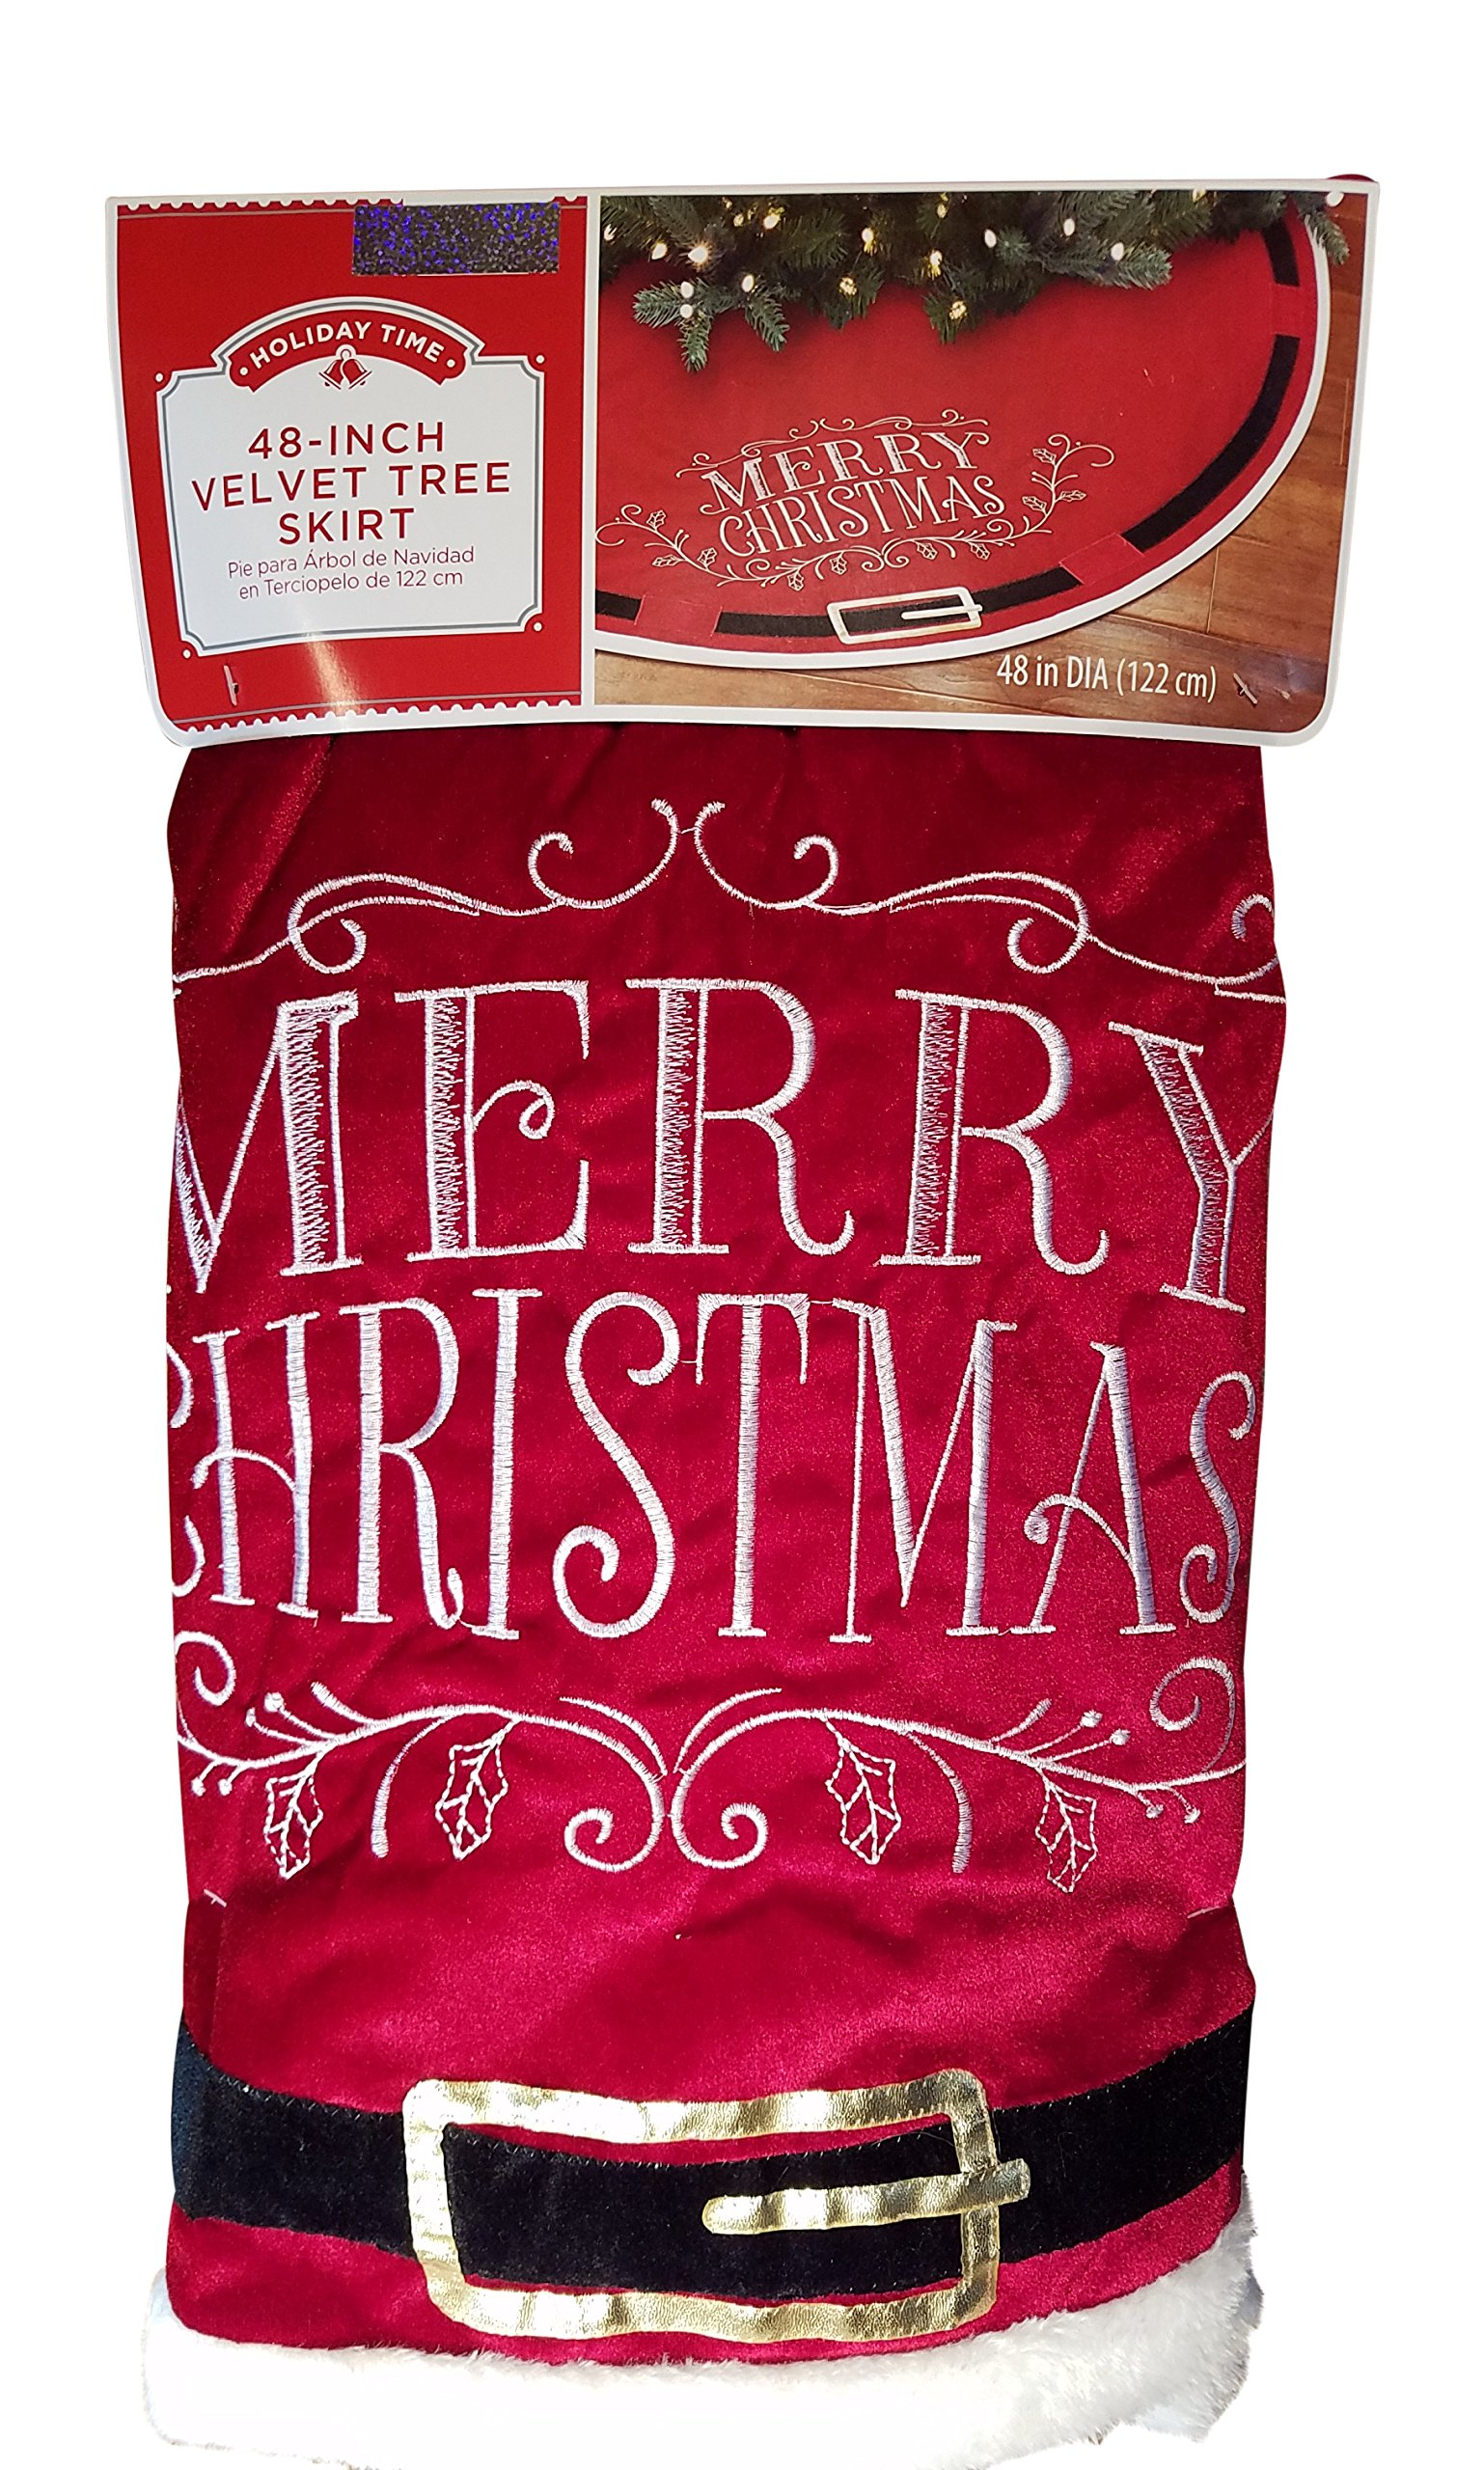 Christmas Tree Skirt - Merry Christmas with Santa Claus Belt Decoration - 48 Skirt by Holiday Time (Image #2)